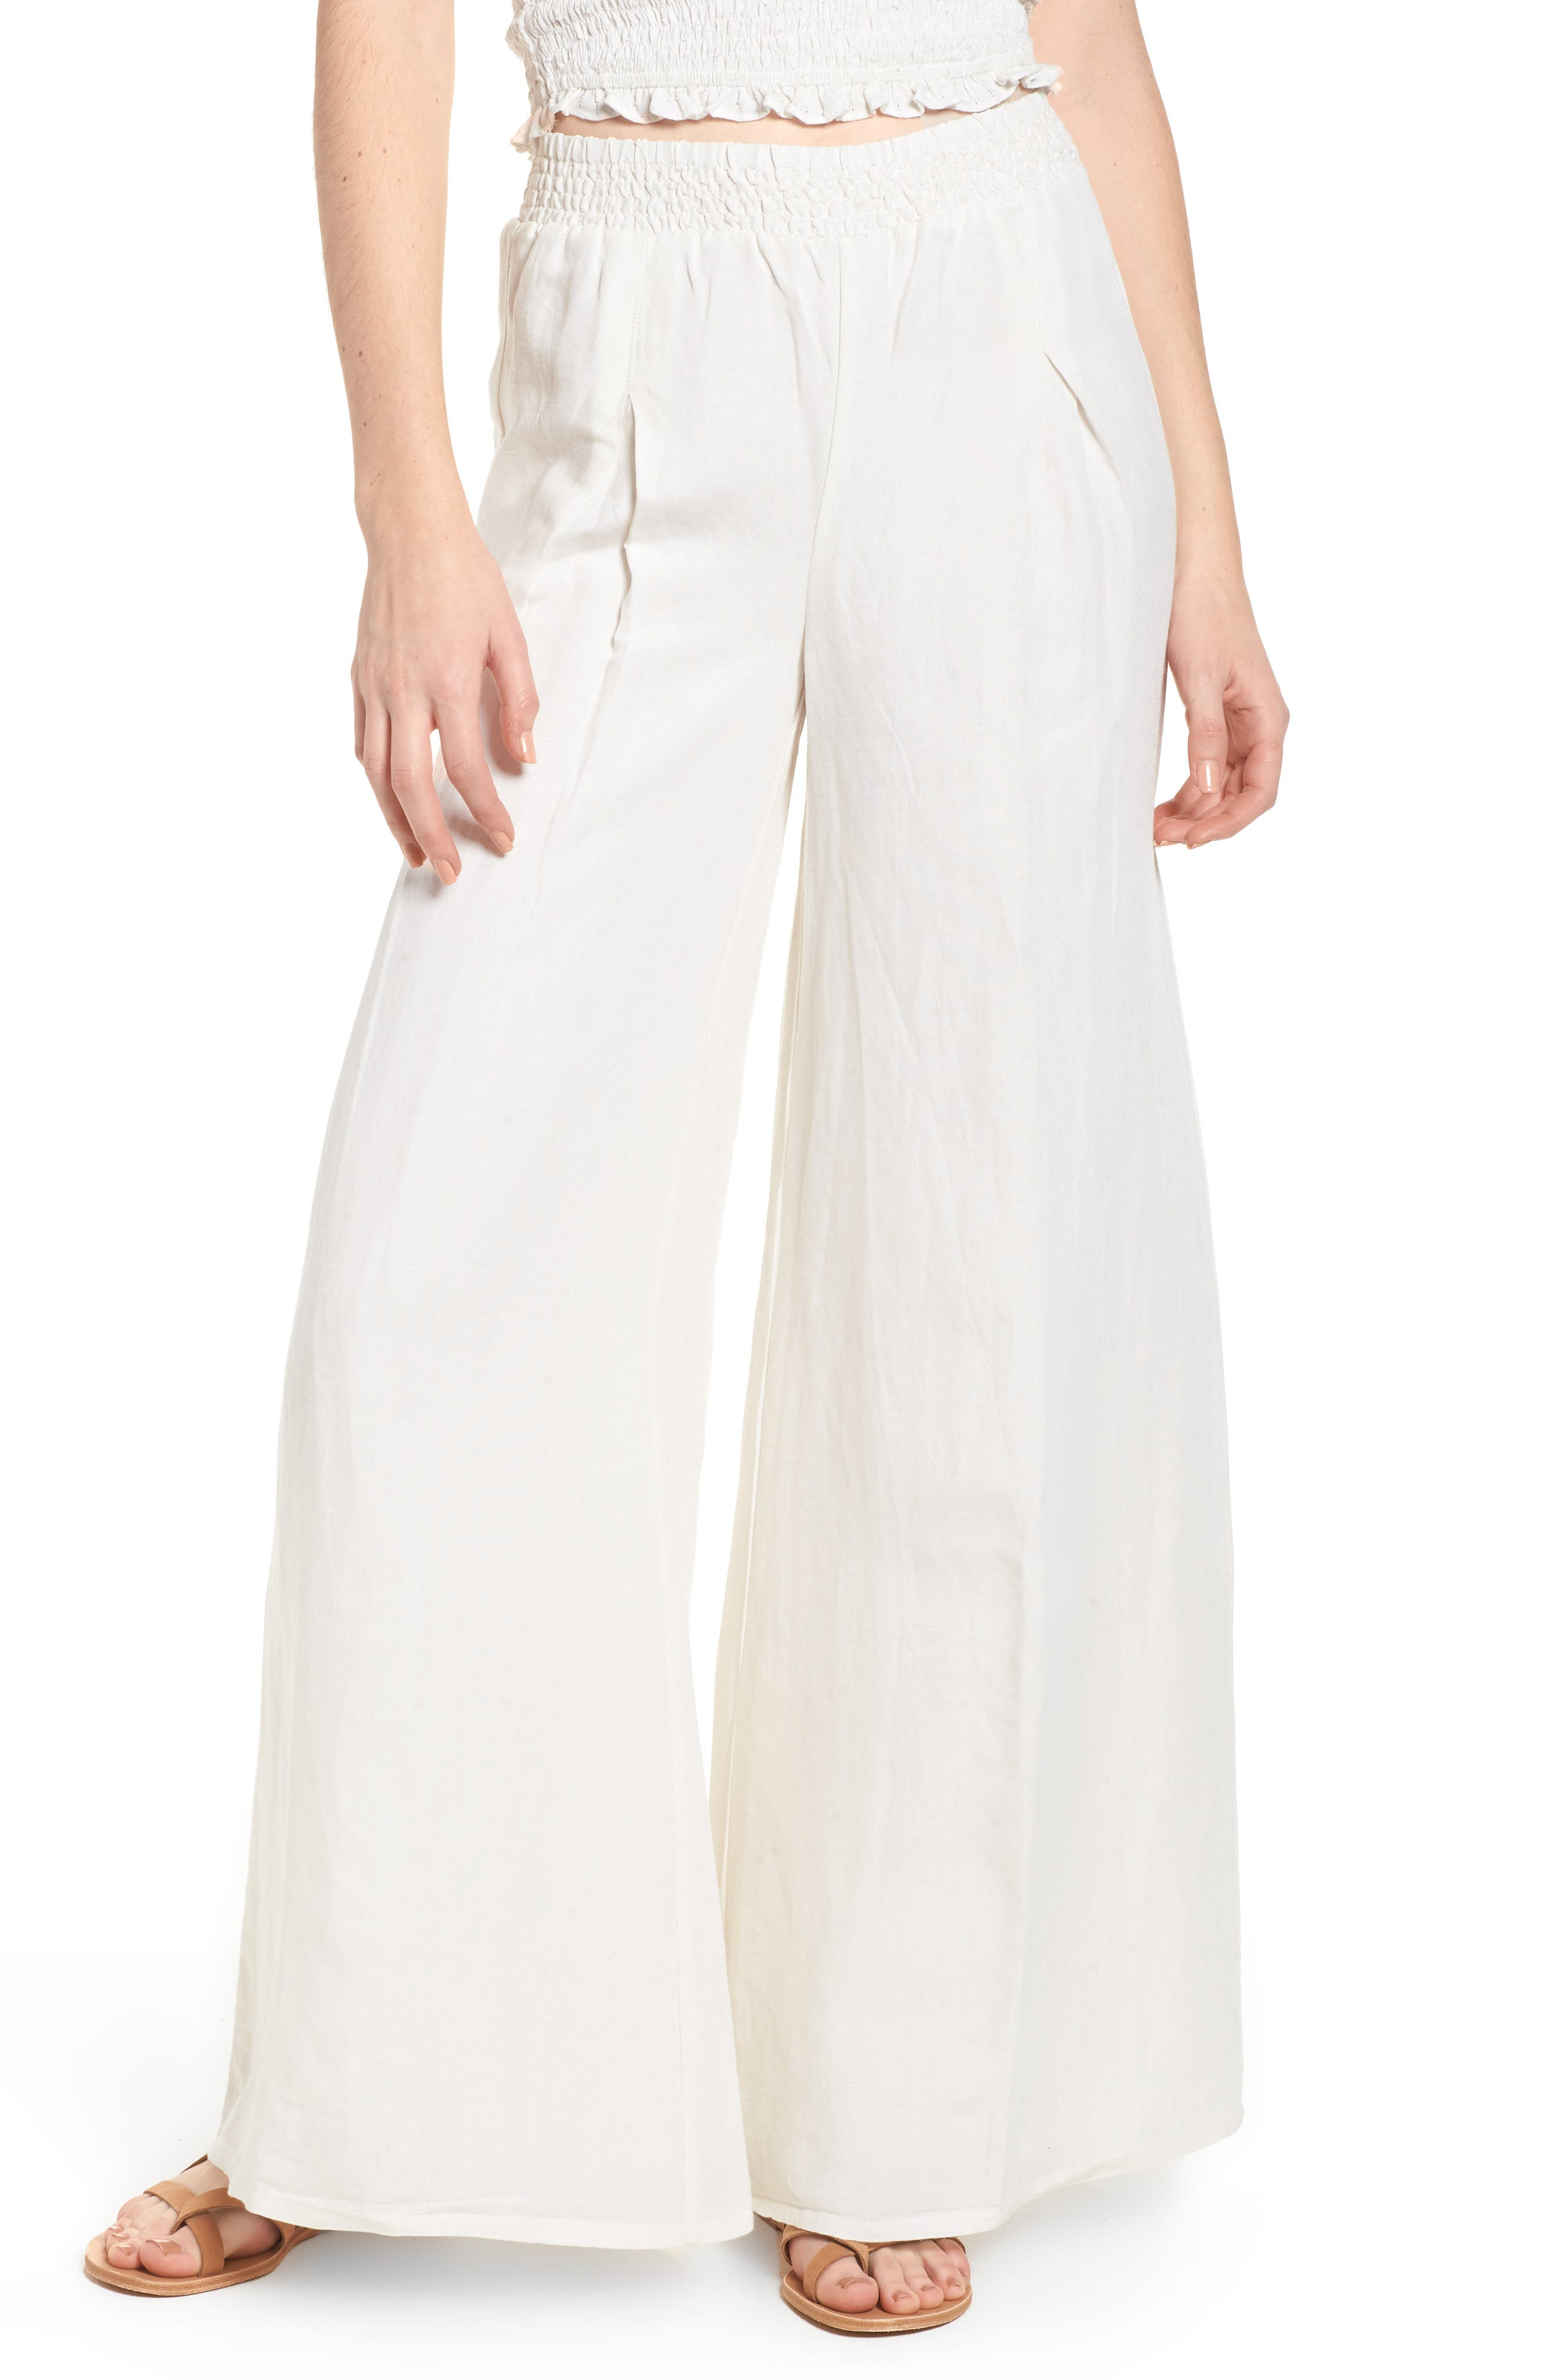 High Roads Smocked Wide Leg Pants,                             Main thumbnail 1, color,                             190